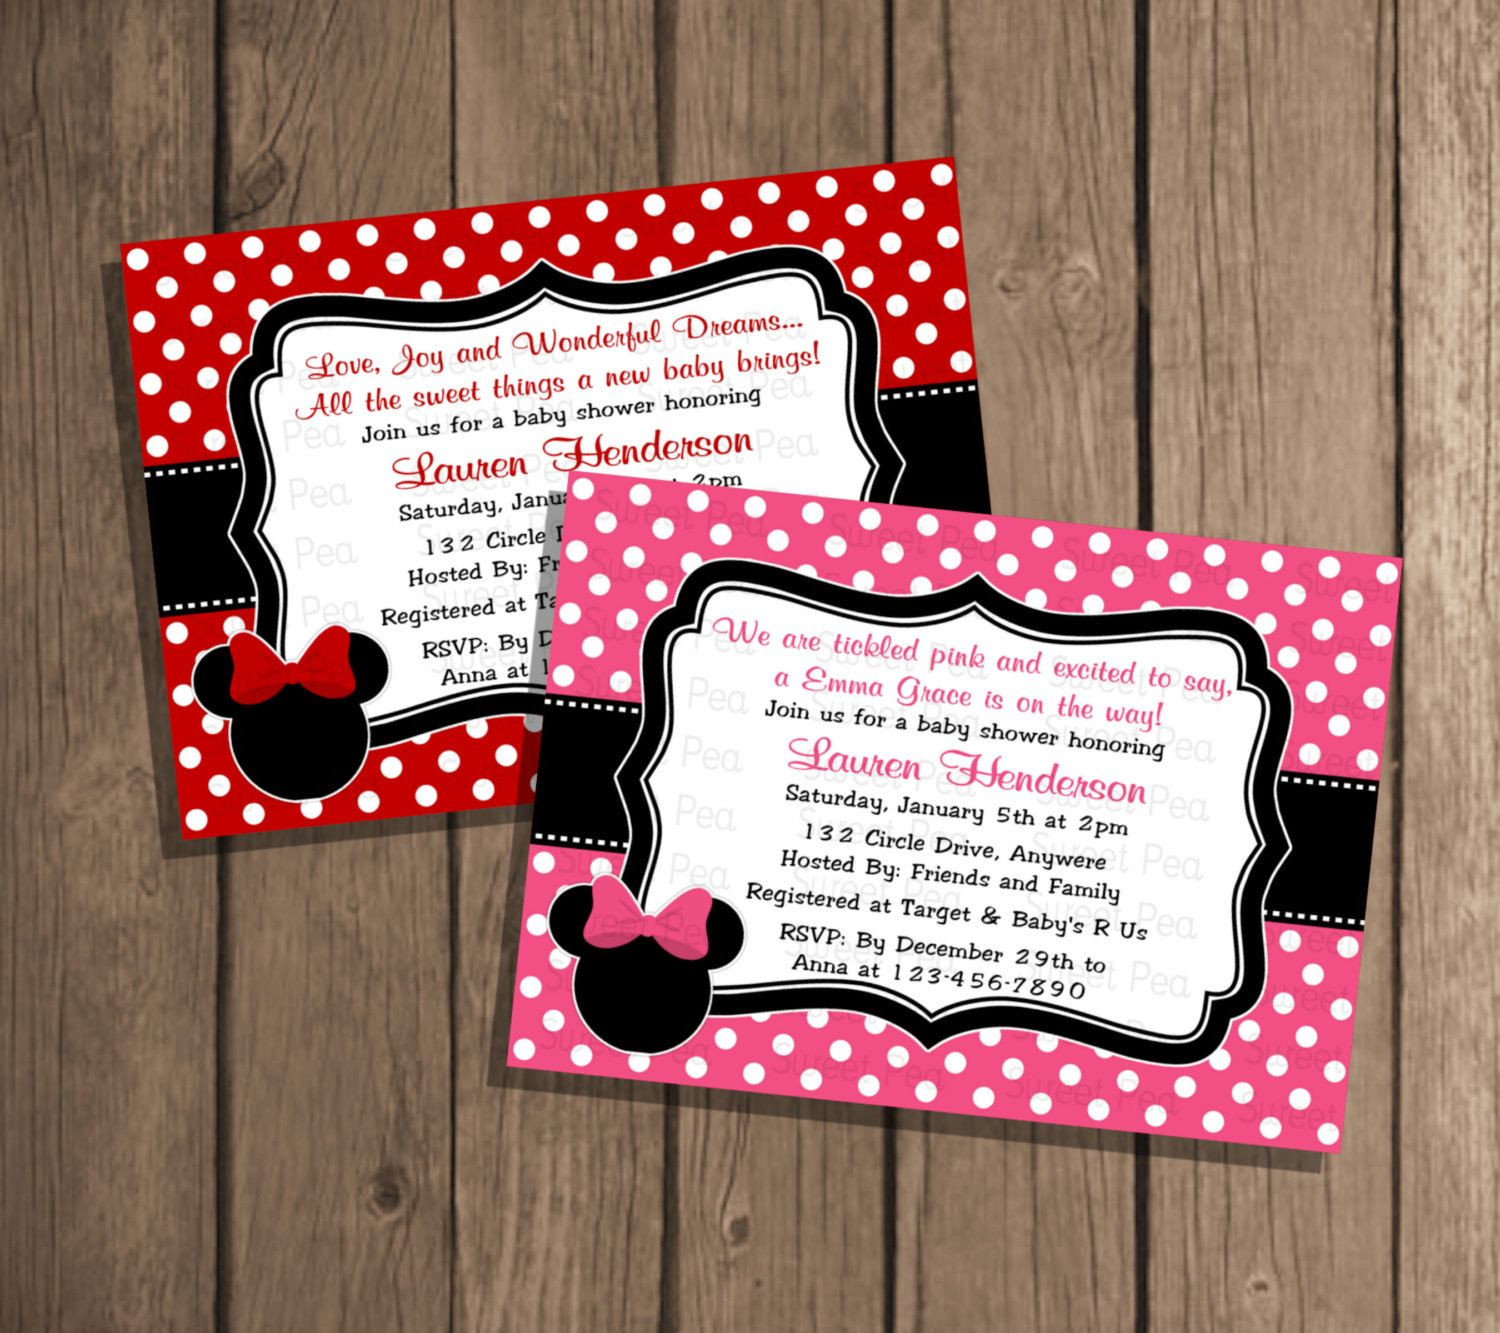 Minnie Mouse Baby Shower invitation | My Blúm\'s work | Pinterest ...